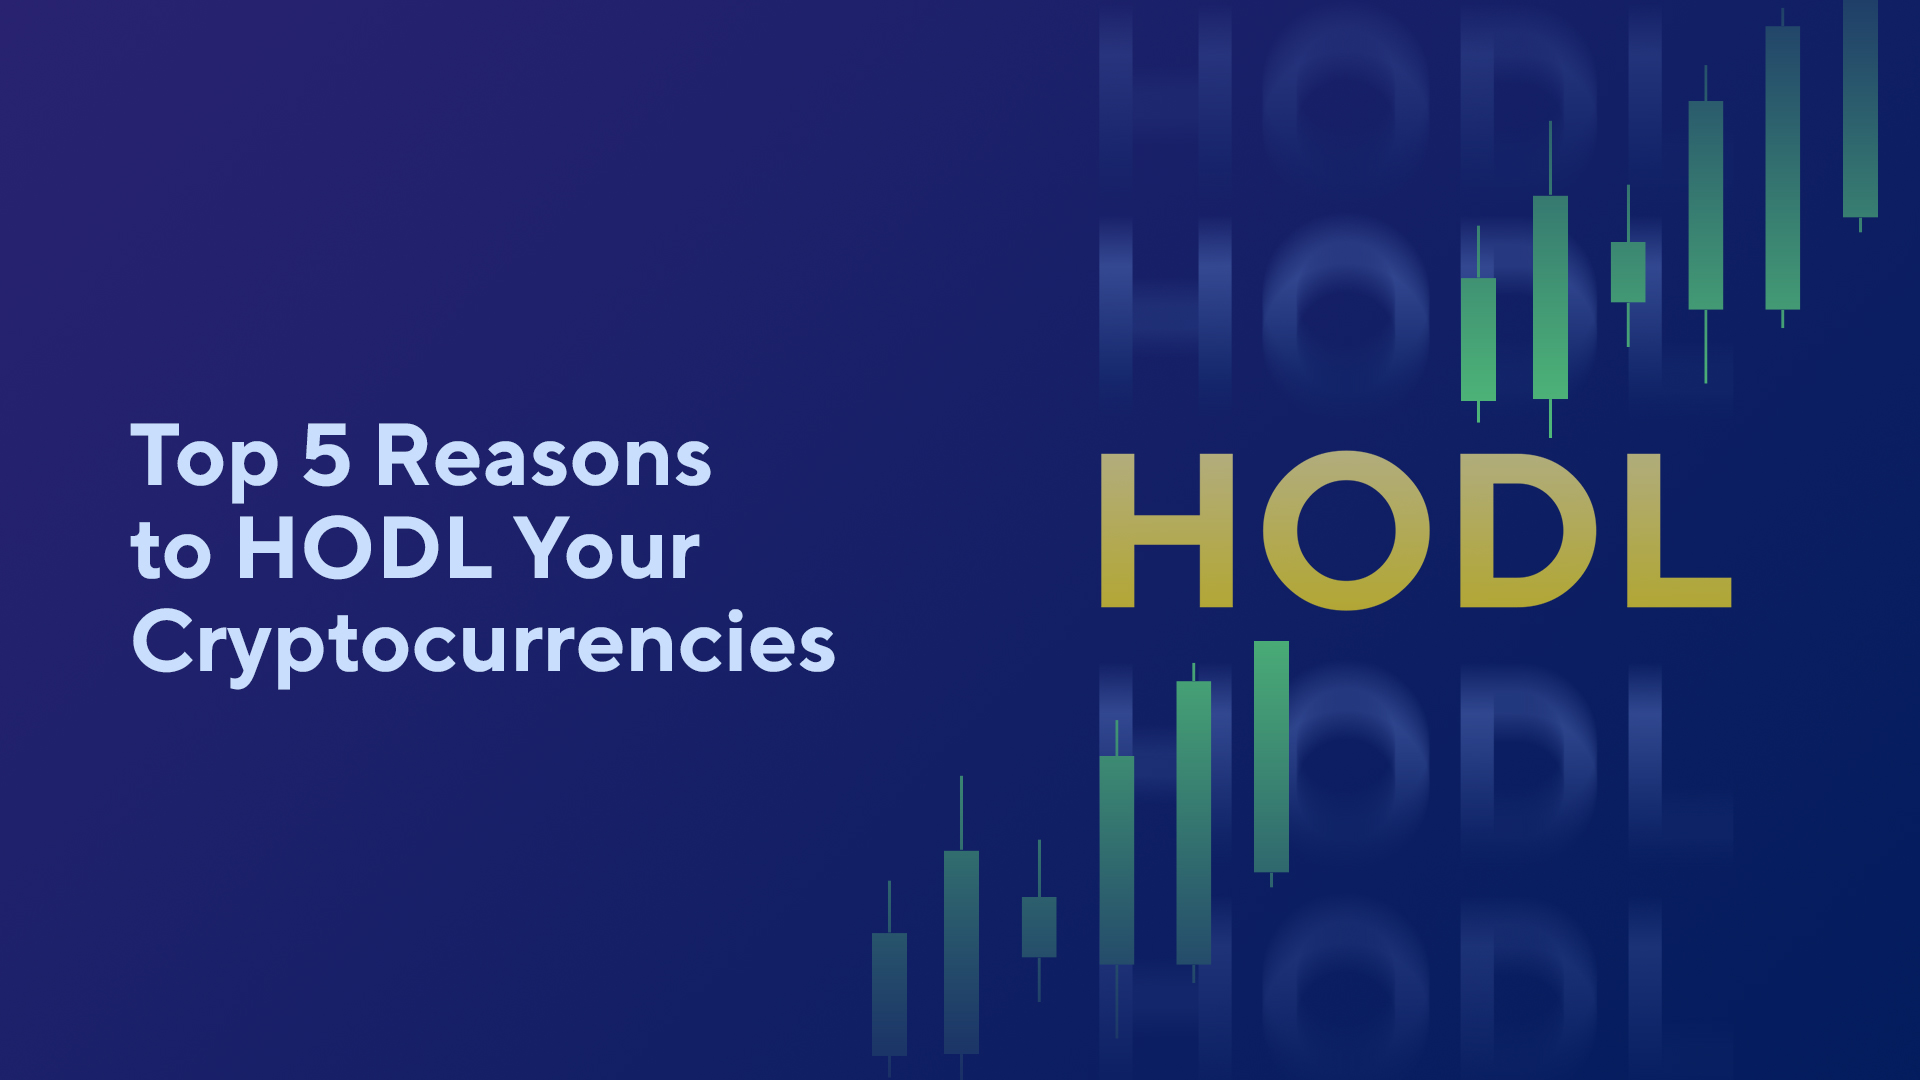 Top 5 Reasons to HODL Your Cryptocurrencies